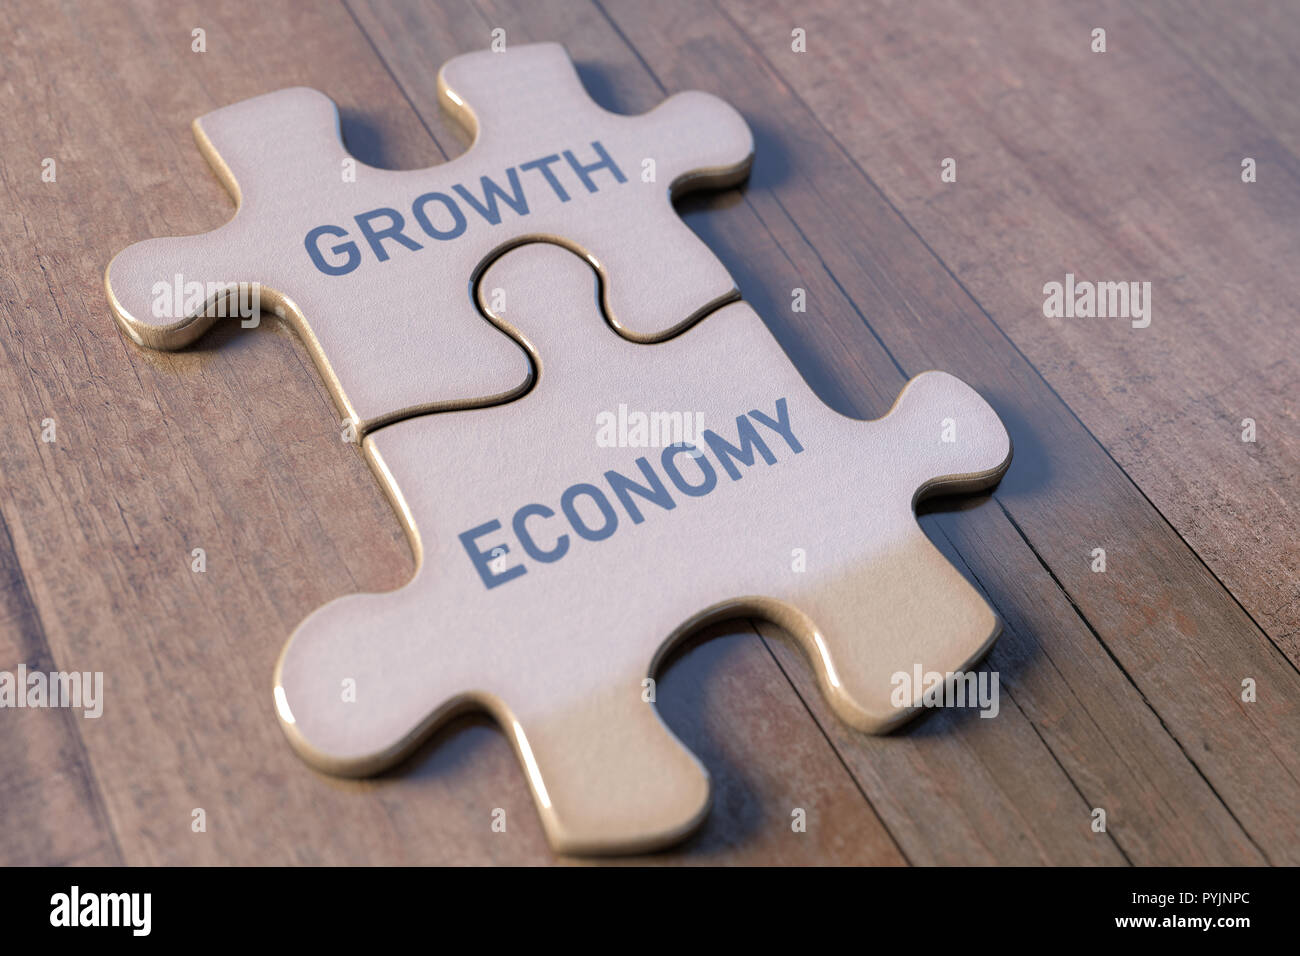 Concept image of economy and growth using parts of a puzzle. Teamwork and good relations in the economy. Stock Photo